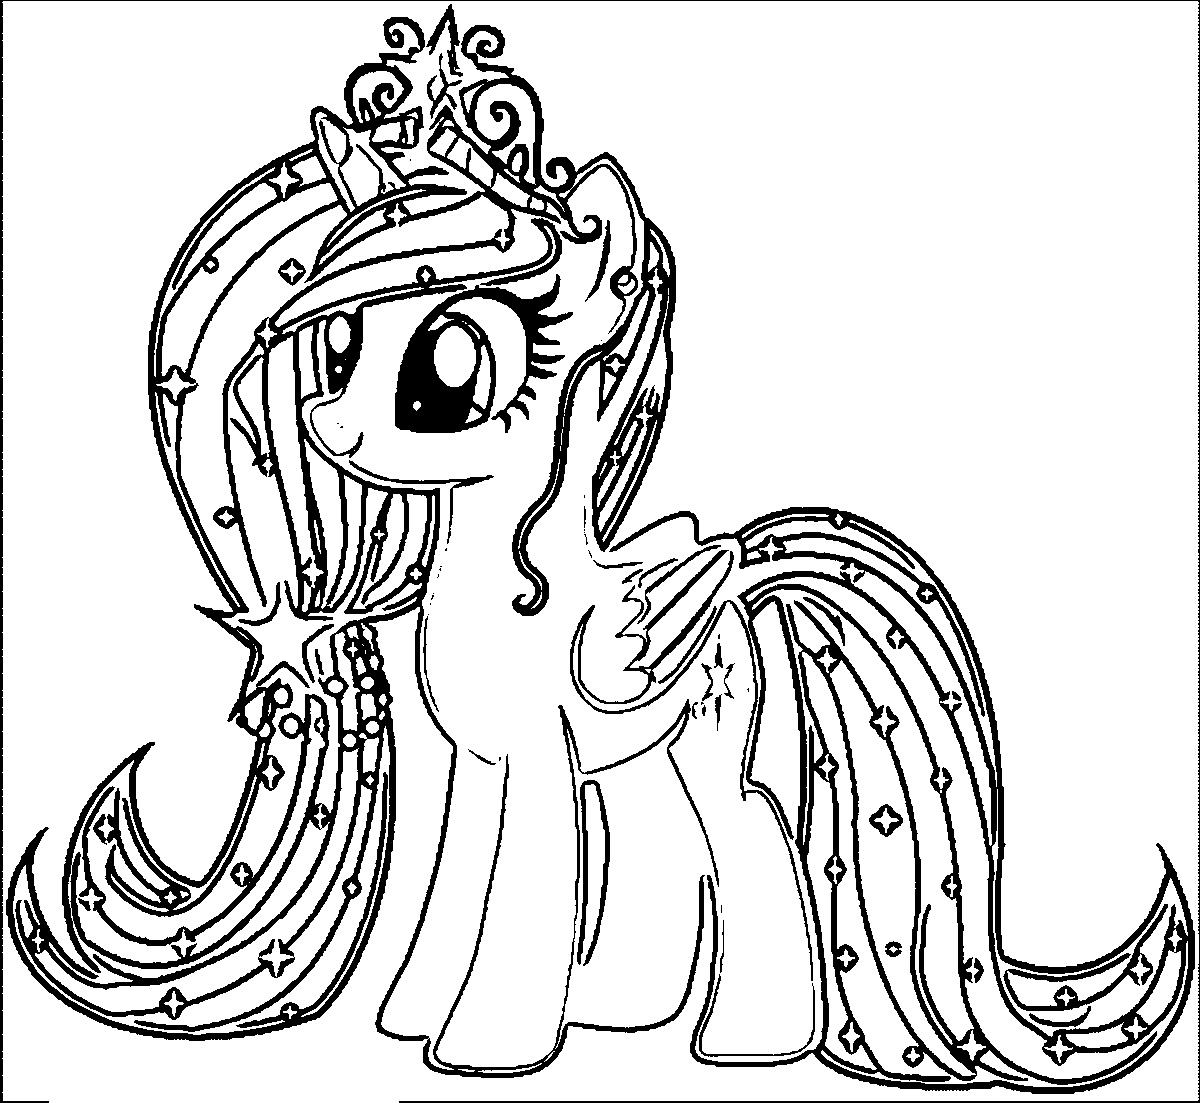 my little pony drawings coloring ponies from ponyville coloring pages free printable little drawings coloring my pony